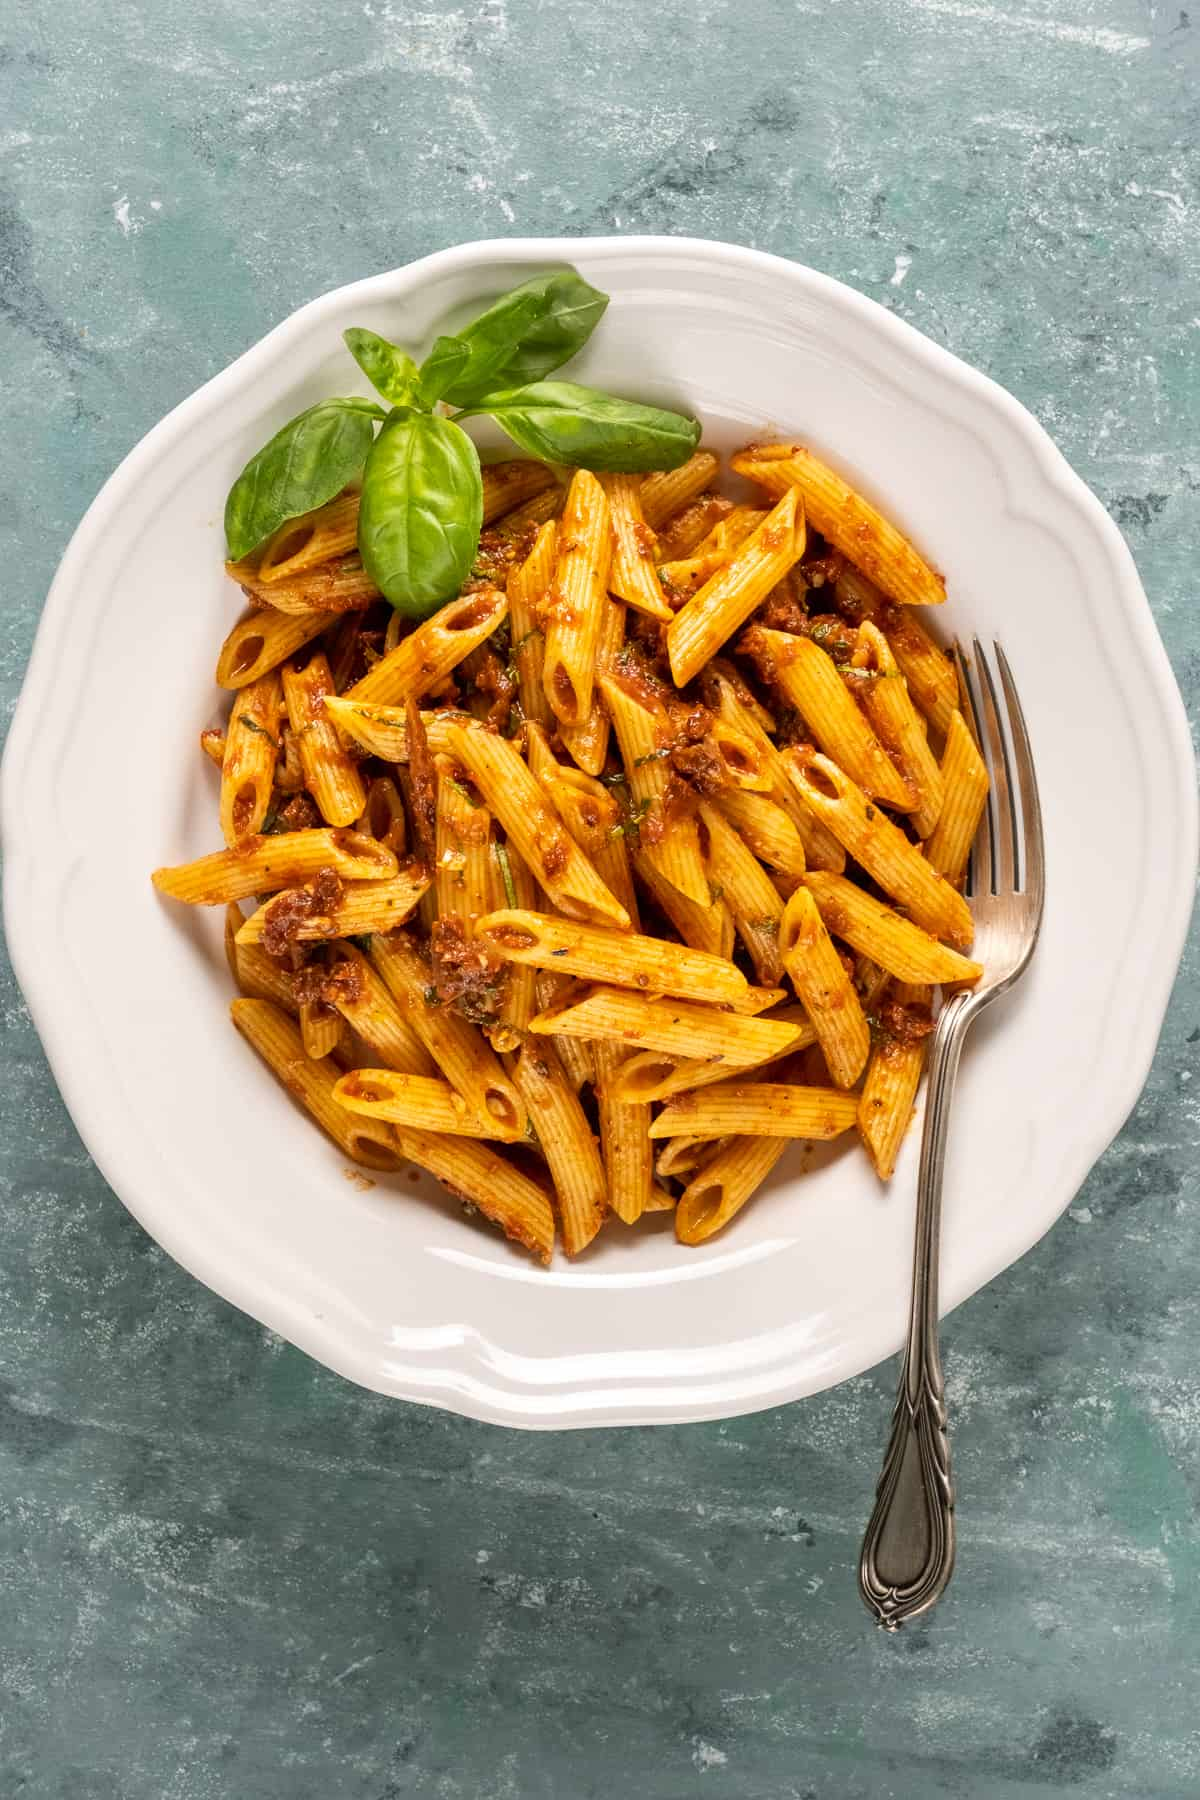 Pasta with a sun-dried tomato sauce in a white bowl topped with basil leaves and a fork inside.